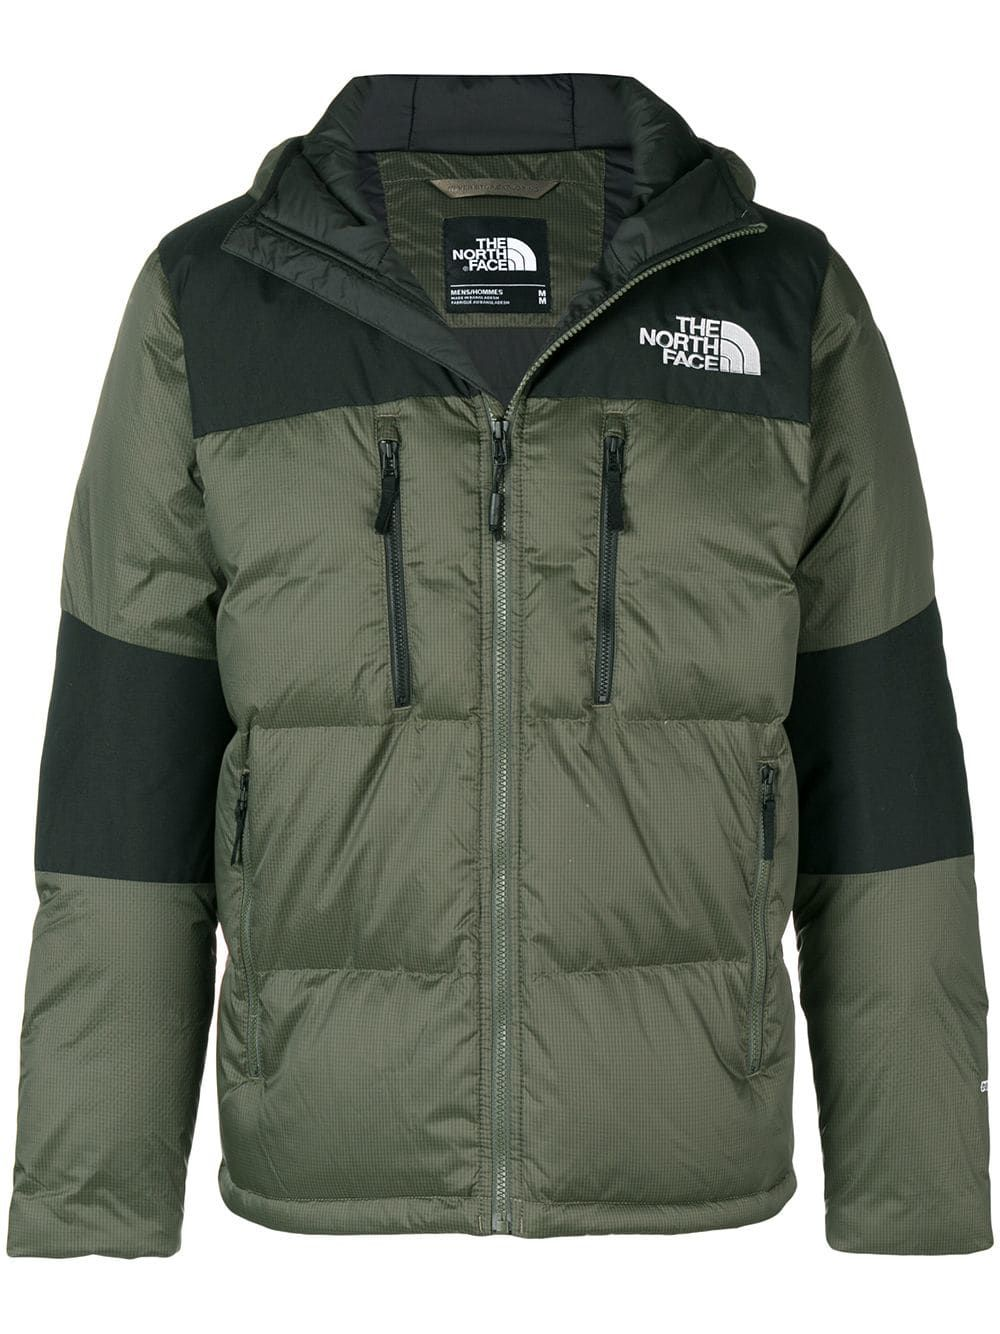 bf0b92c5a887 THE NORTH FACE THE NORTH FACE TWO-TONE PUFFER JACKET - GREEN.  thenorthface   cloth